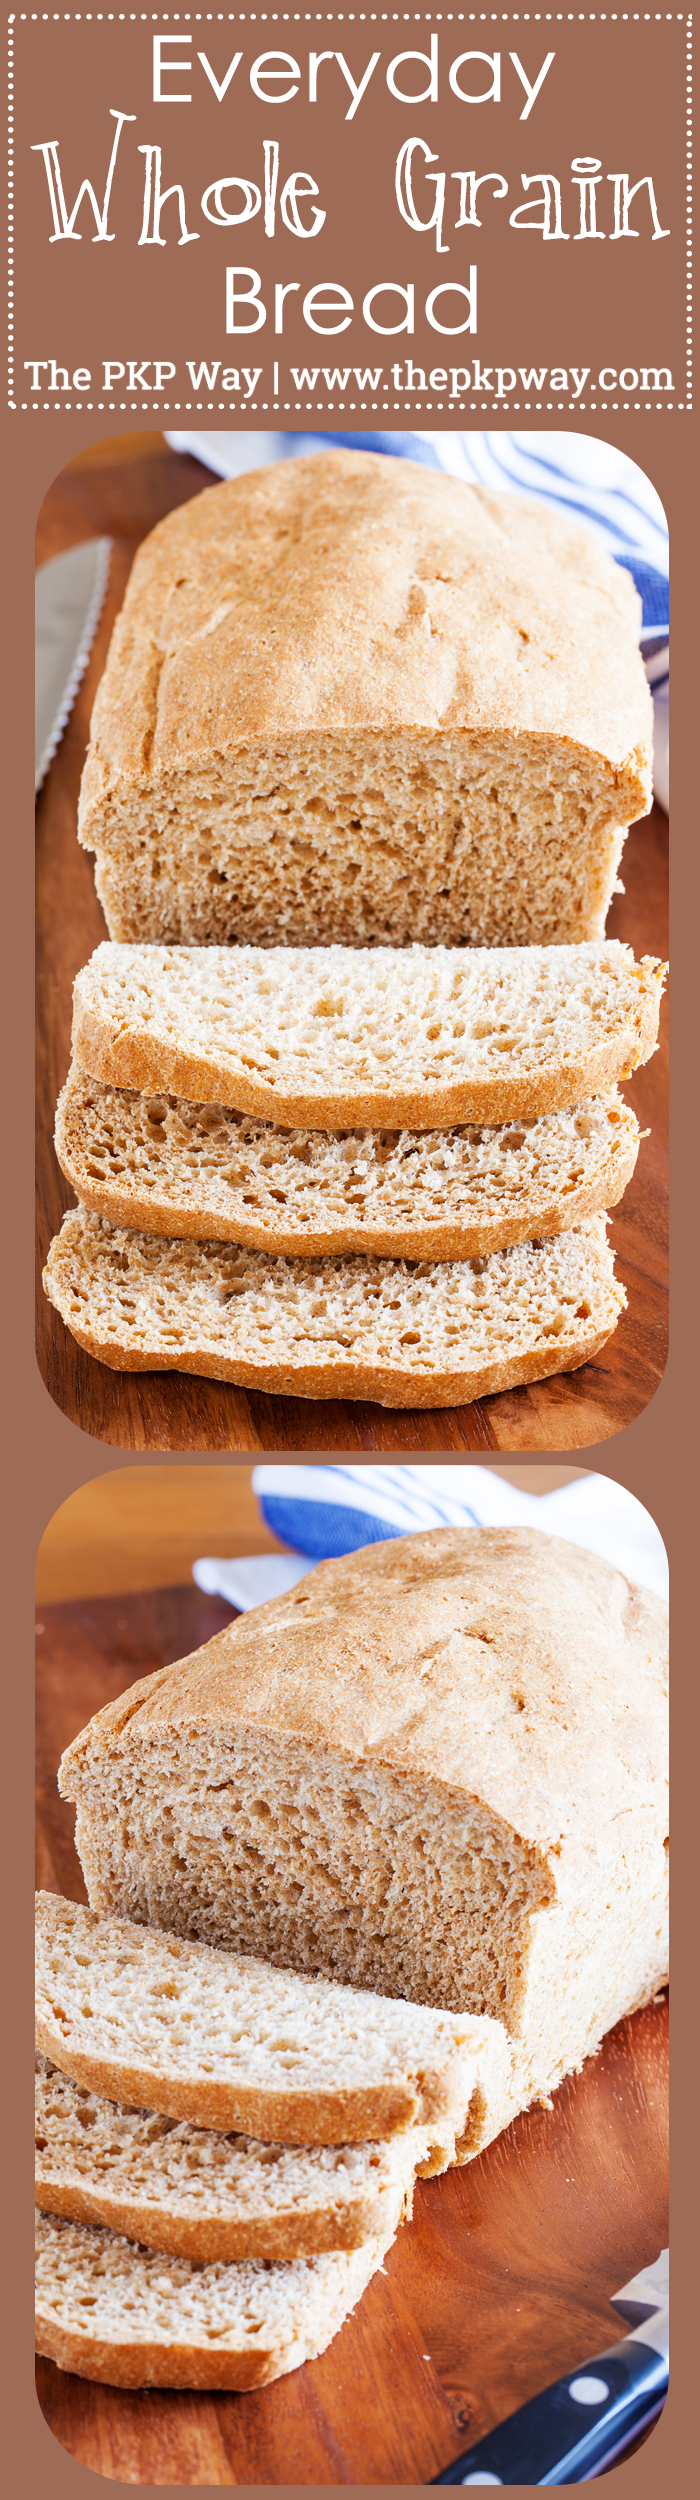 Skip the sandwich bread at the store and make this Everyday Whole Grain Bread instead!